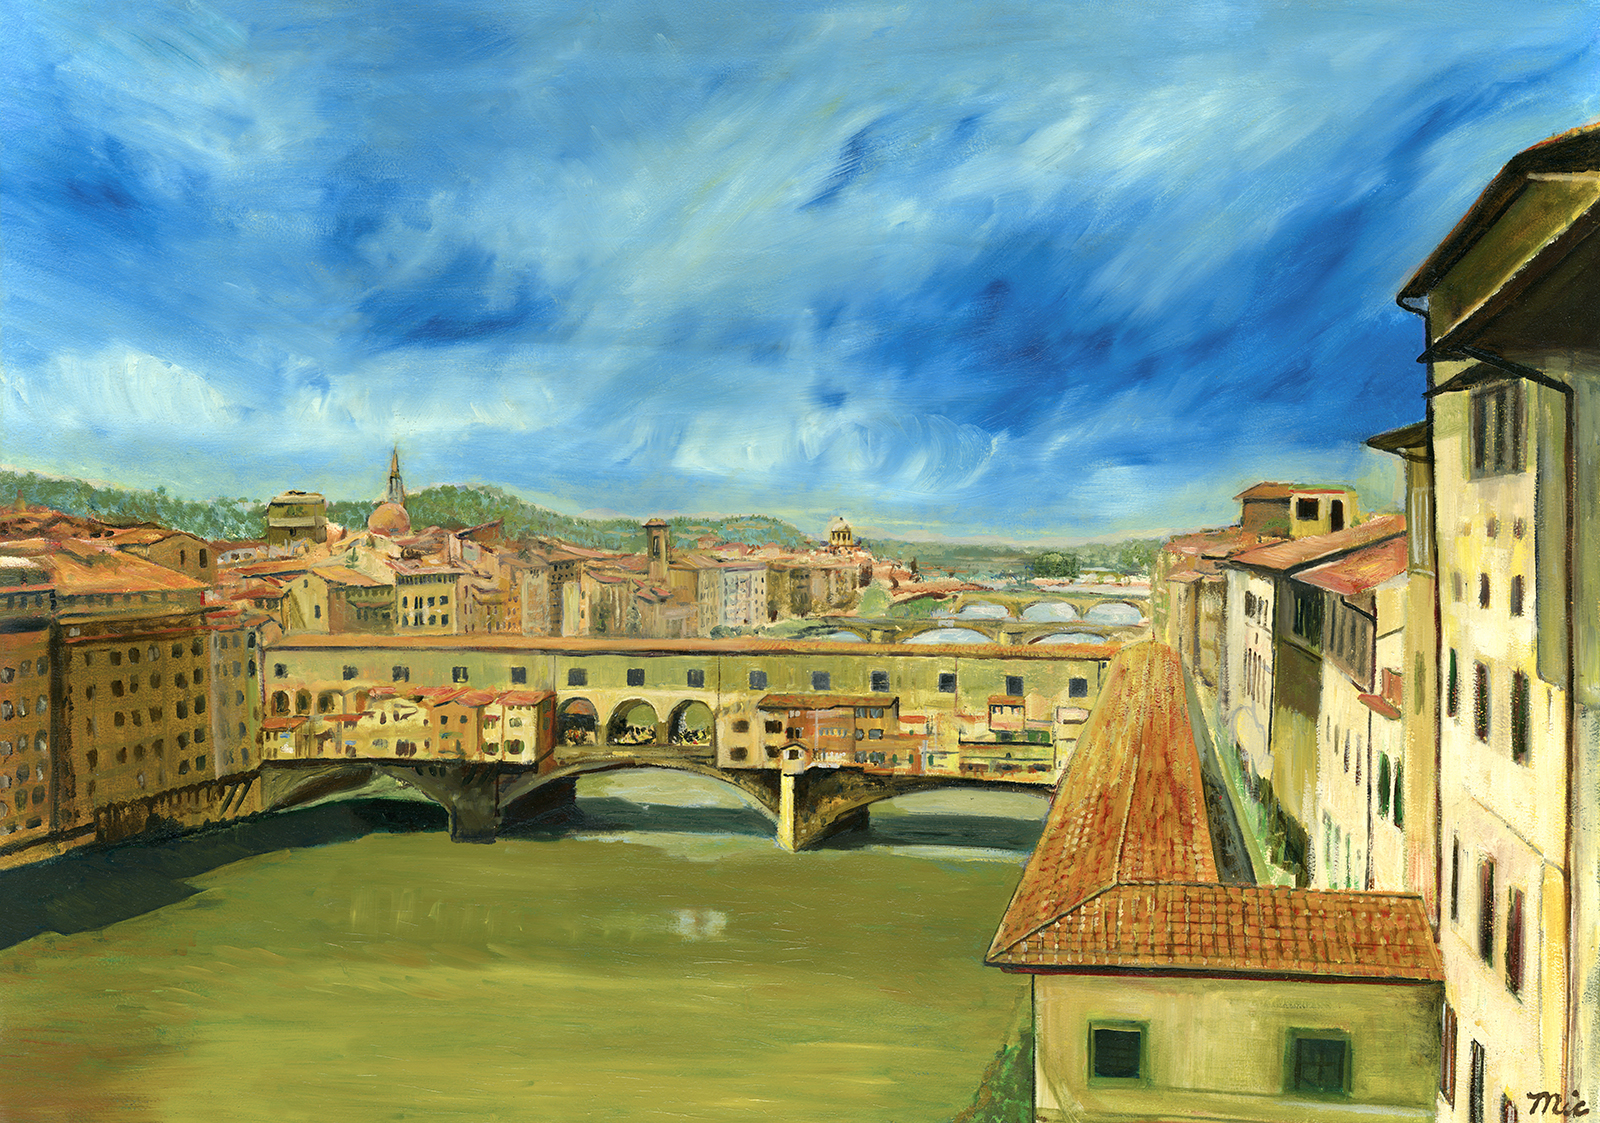 """""""Ponte Vecchio""""Florence, Italy - Oil on panel, Private collection Jim Lahnala Rick Wright.Giclee Limited Edition and canvas prints are available. Please visit the prints gallery."""